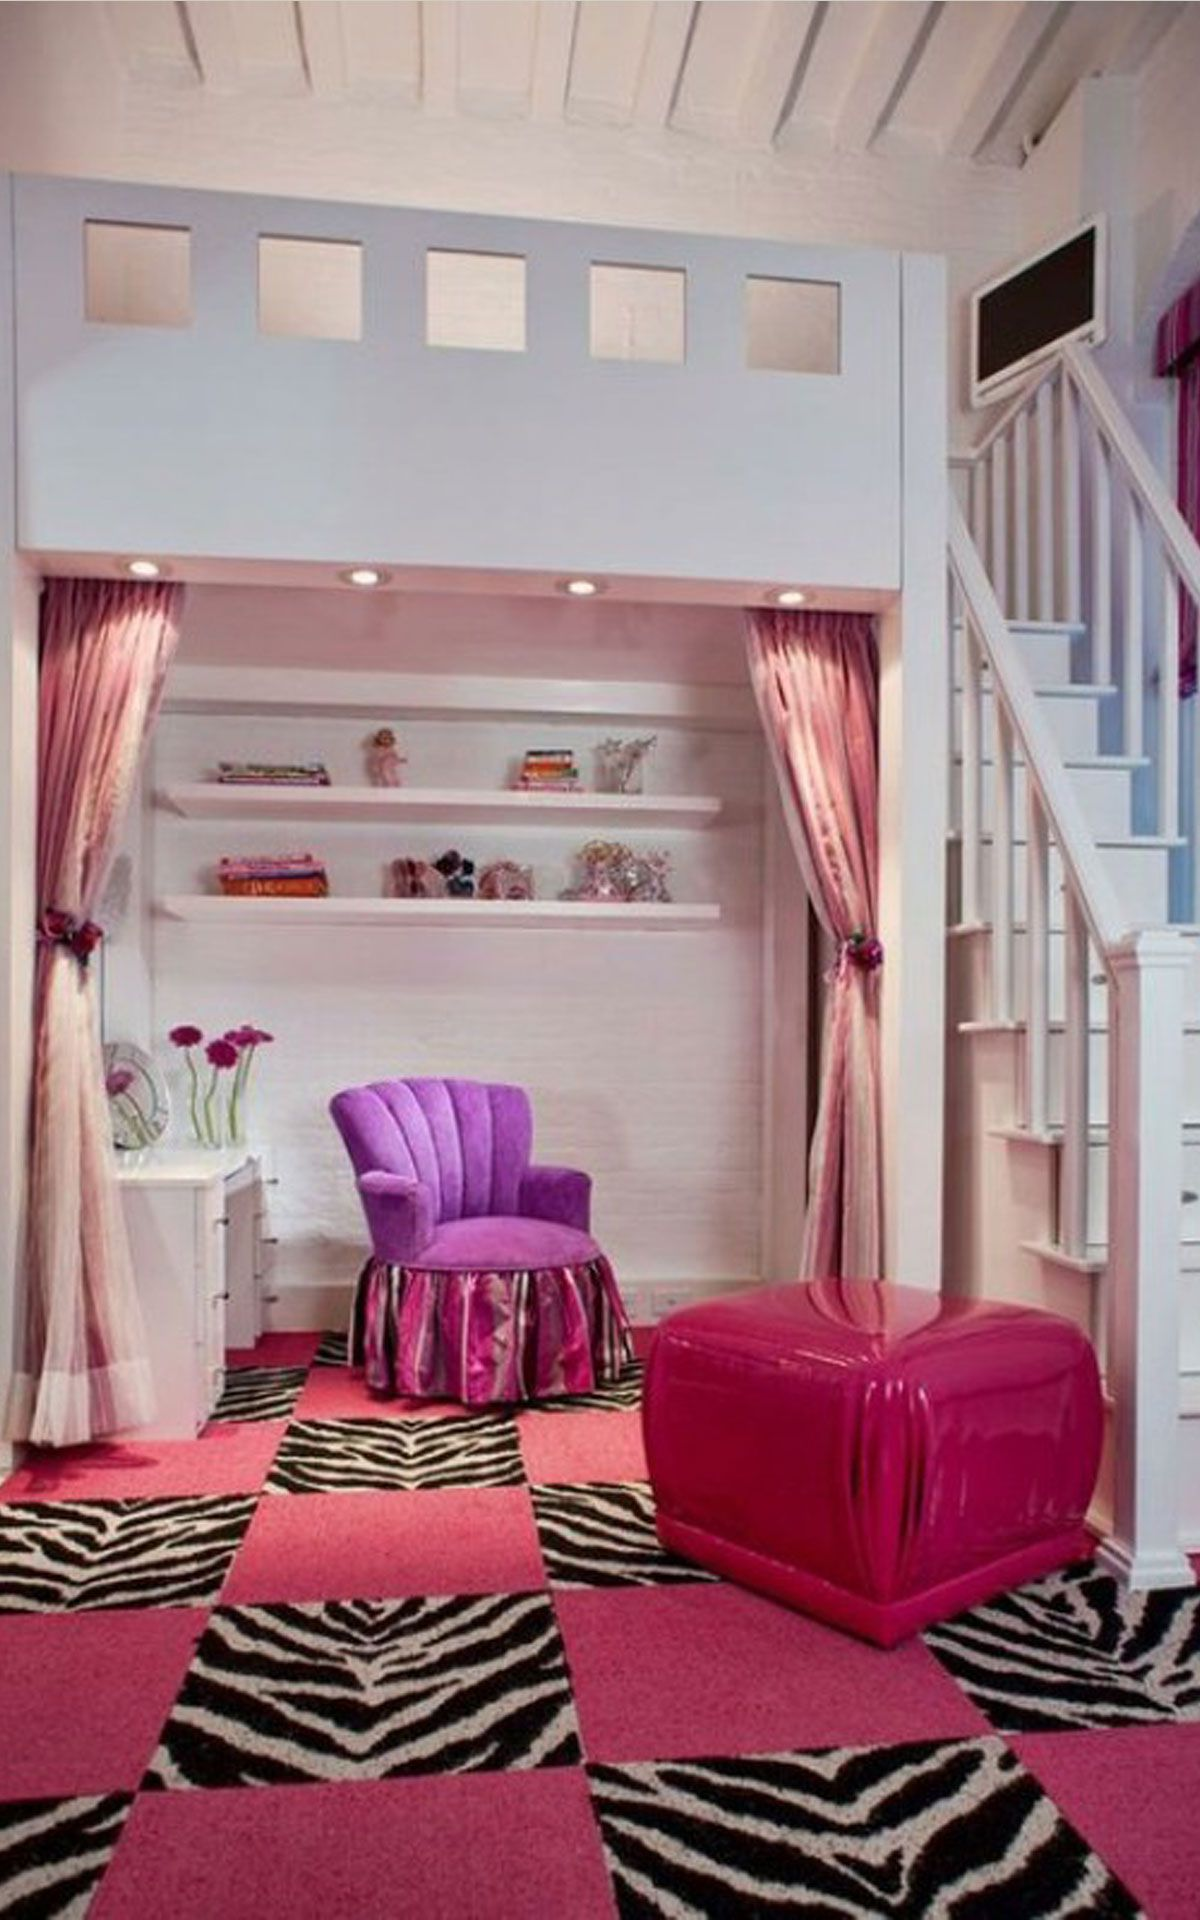 Bedroom Terrific Teenage Room Ideas For Small Space Room With